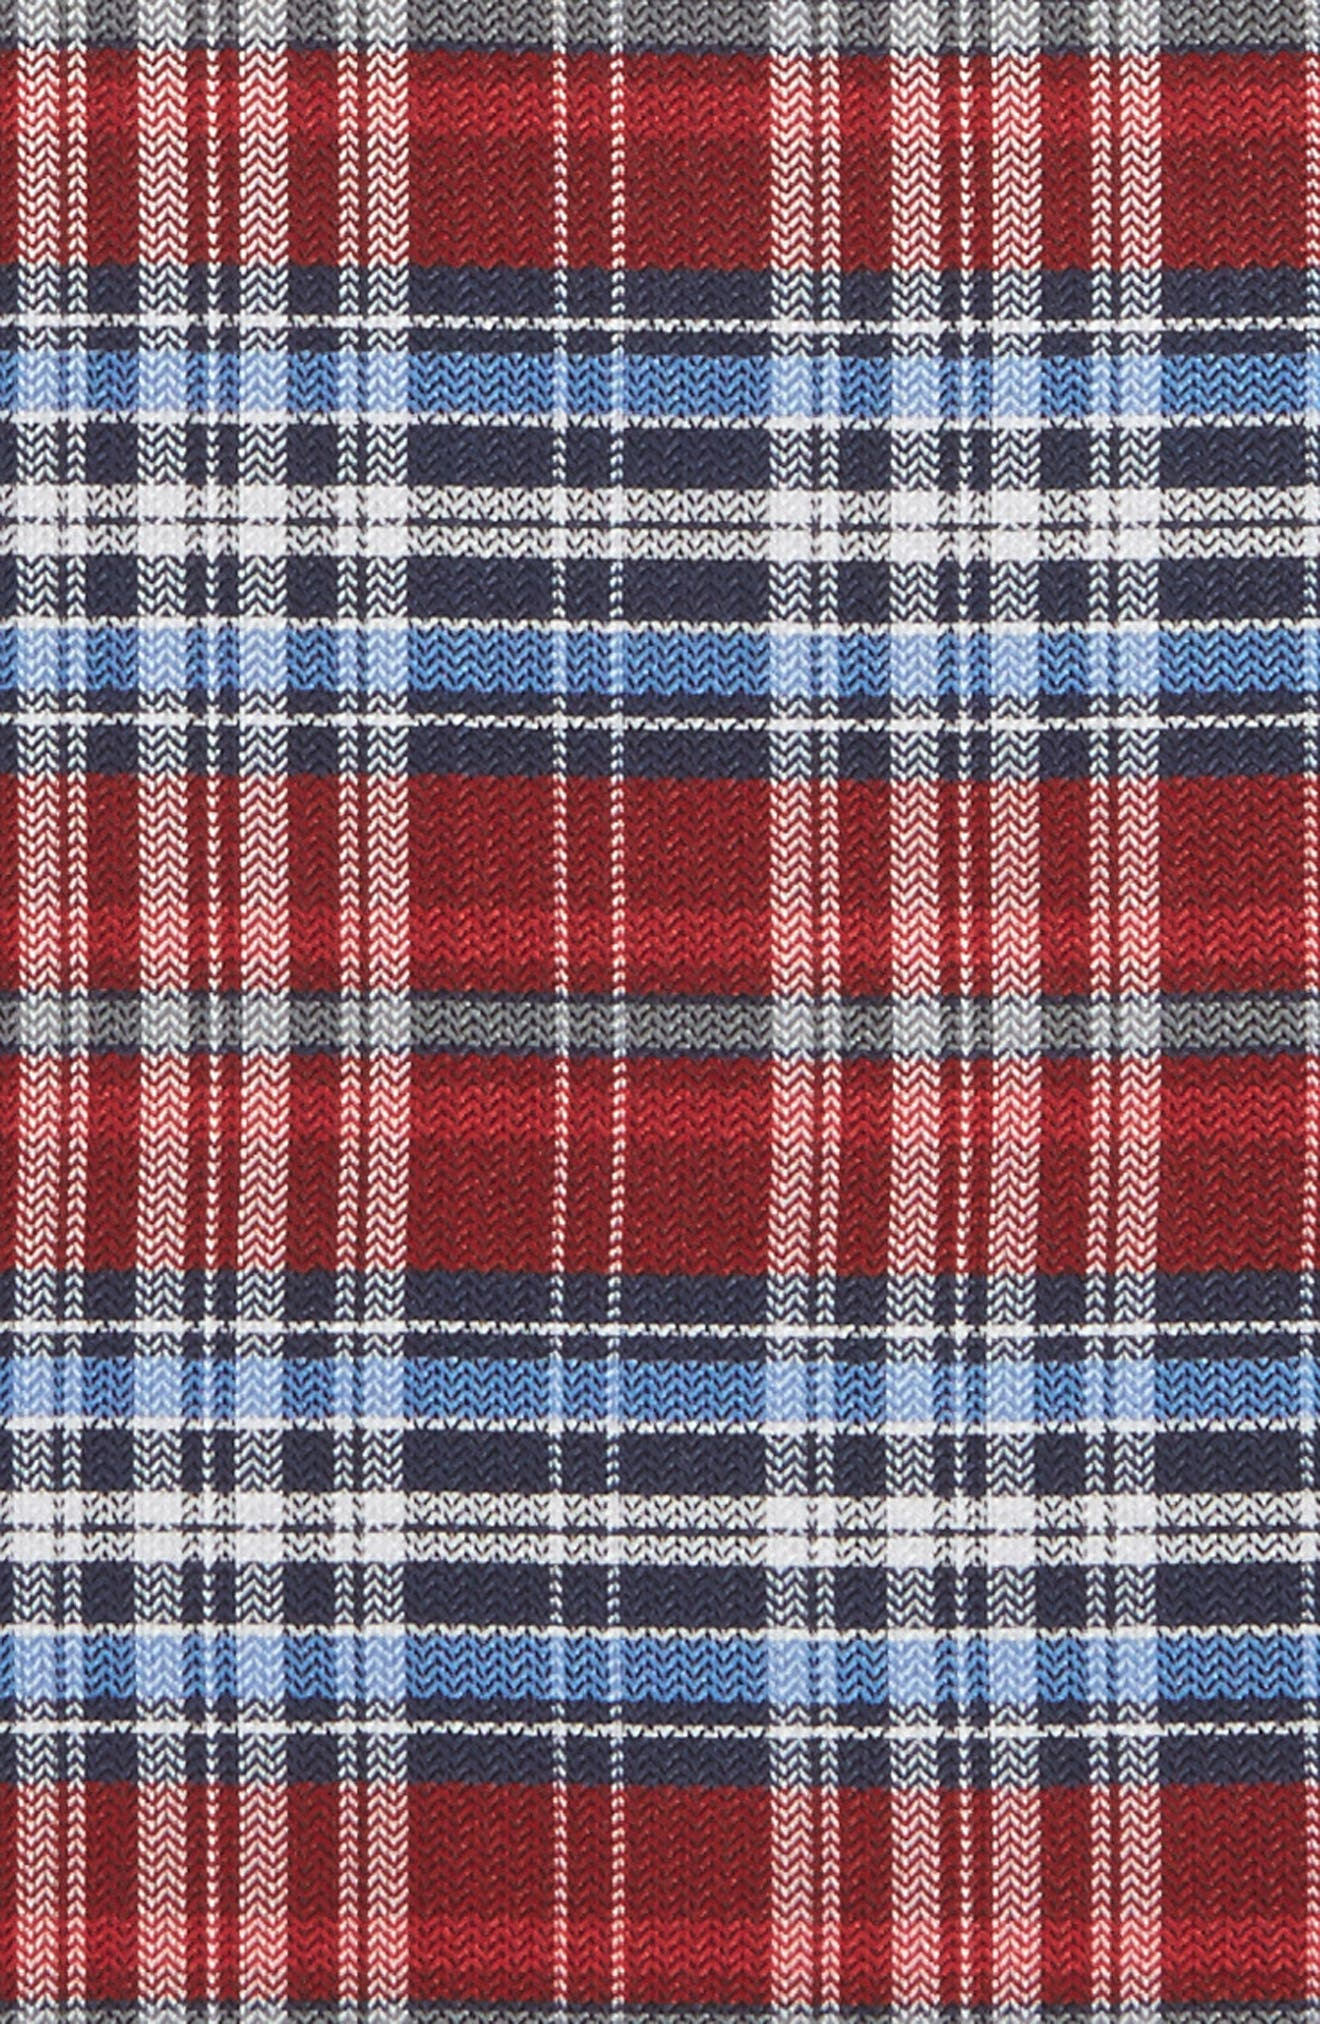 Alternate Image 3  - The Tie Bar Motley Plaid Silk Pocket Square